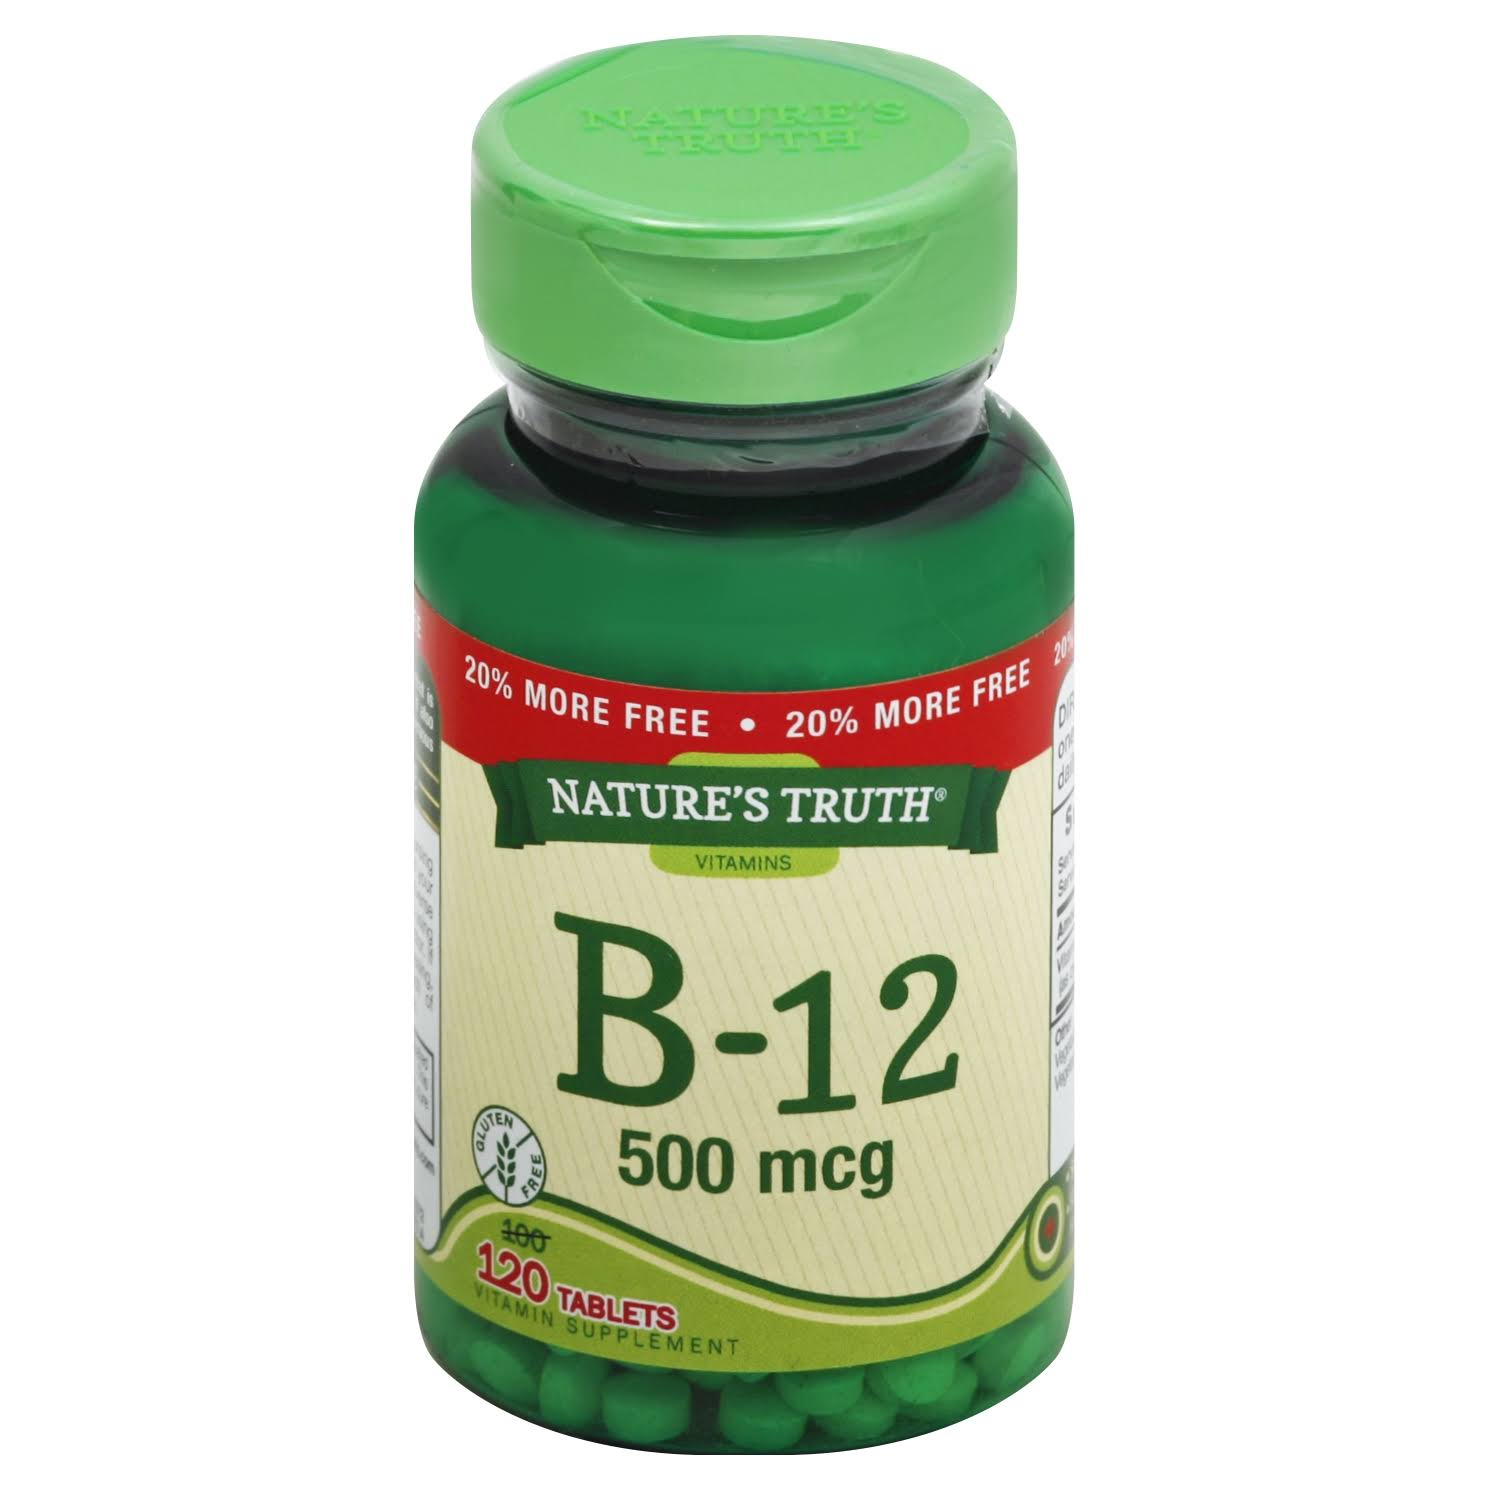 Nature's Truth Vitamin B-12 500mg Tablets - x120